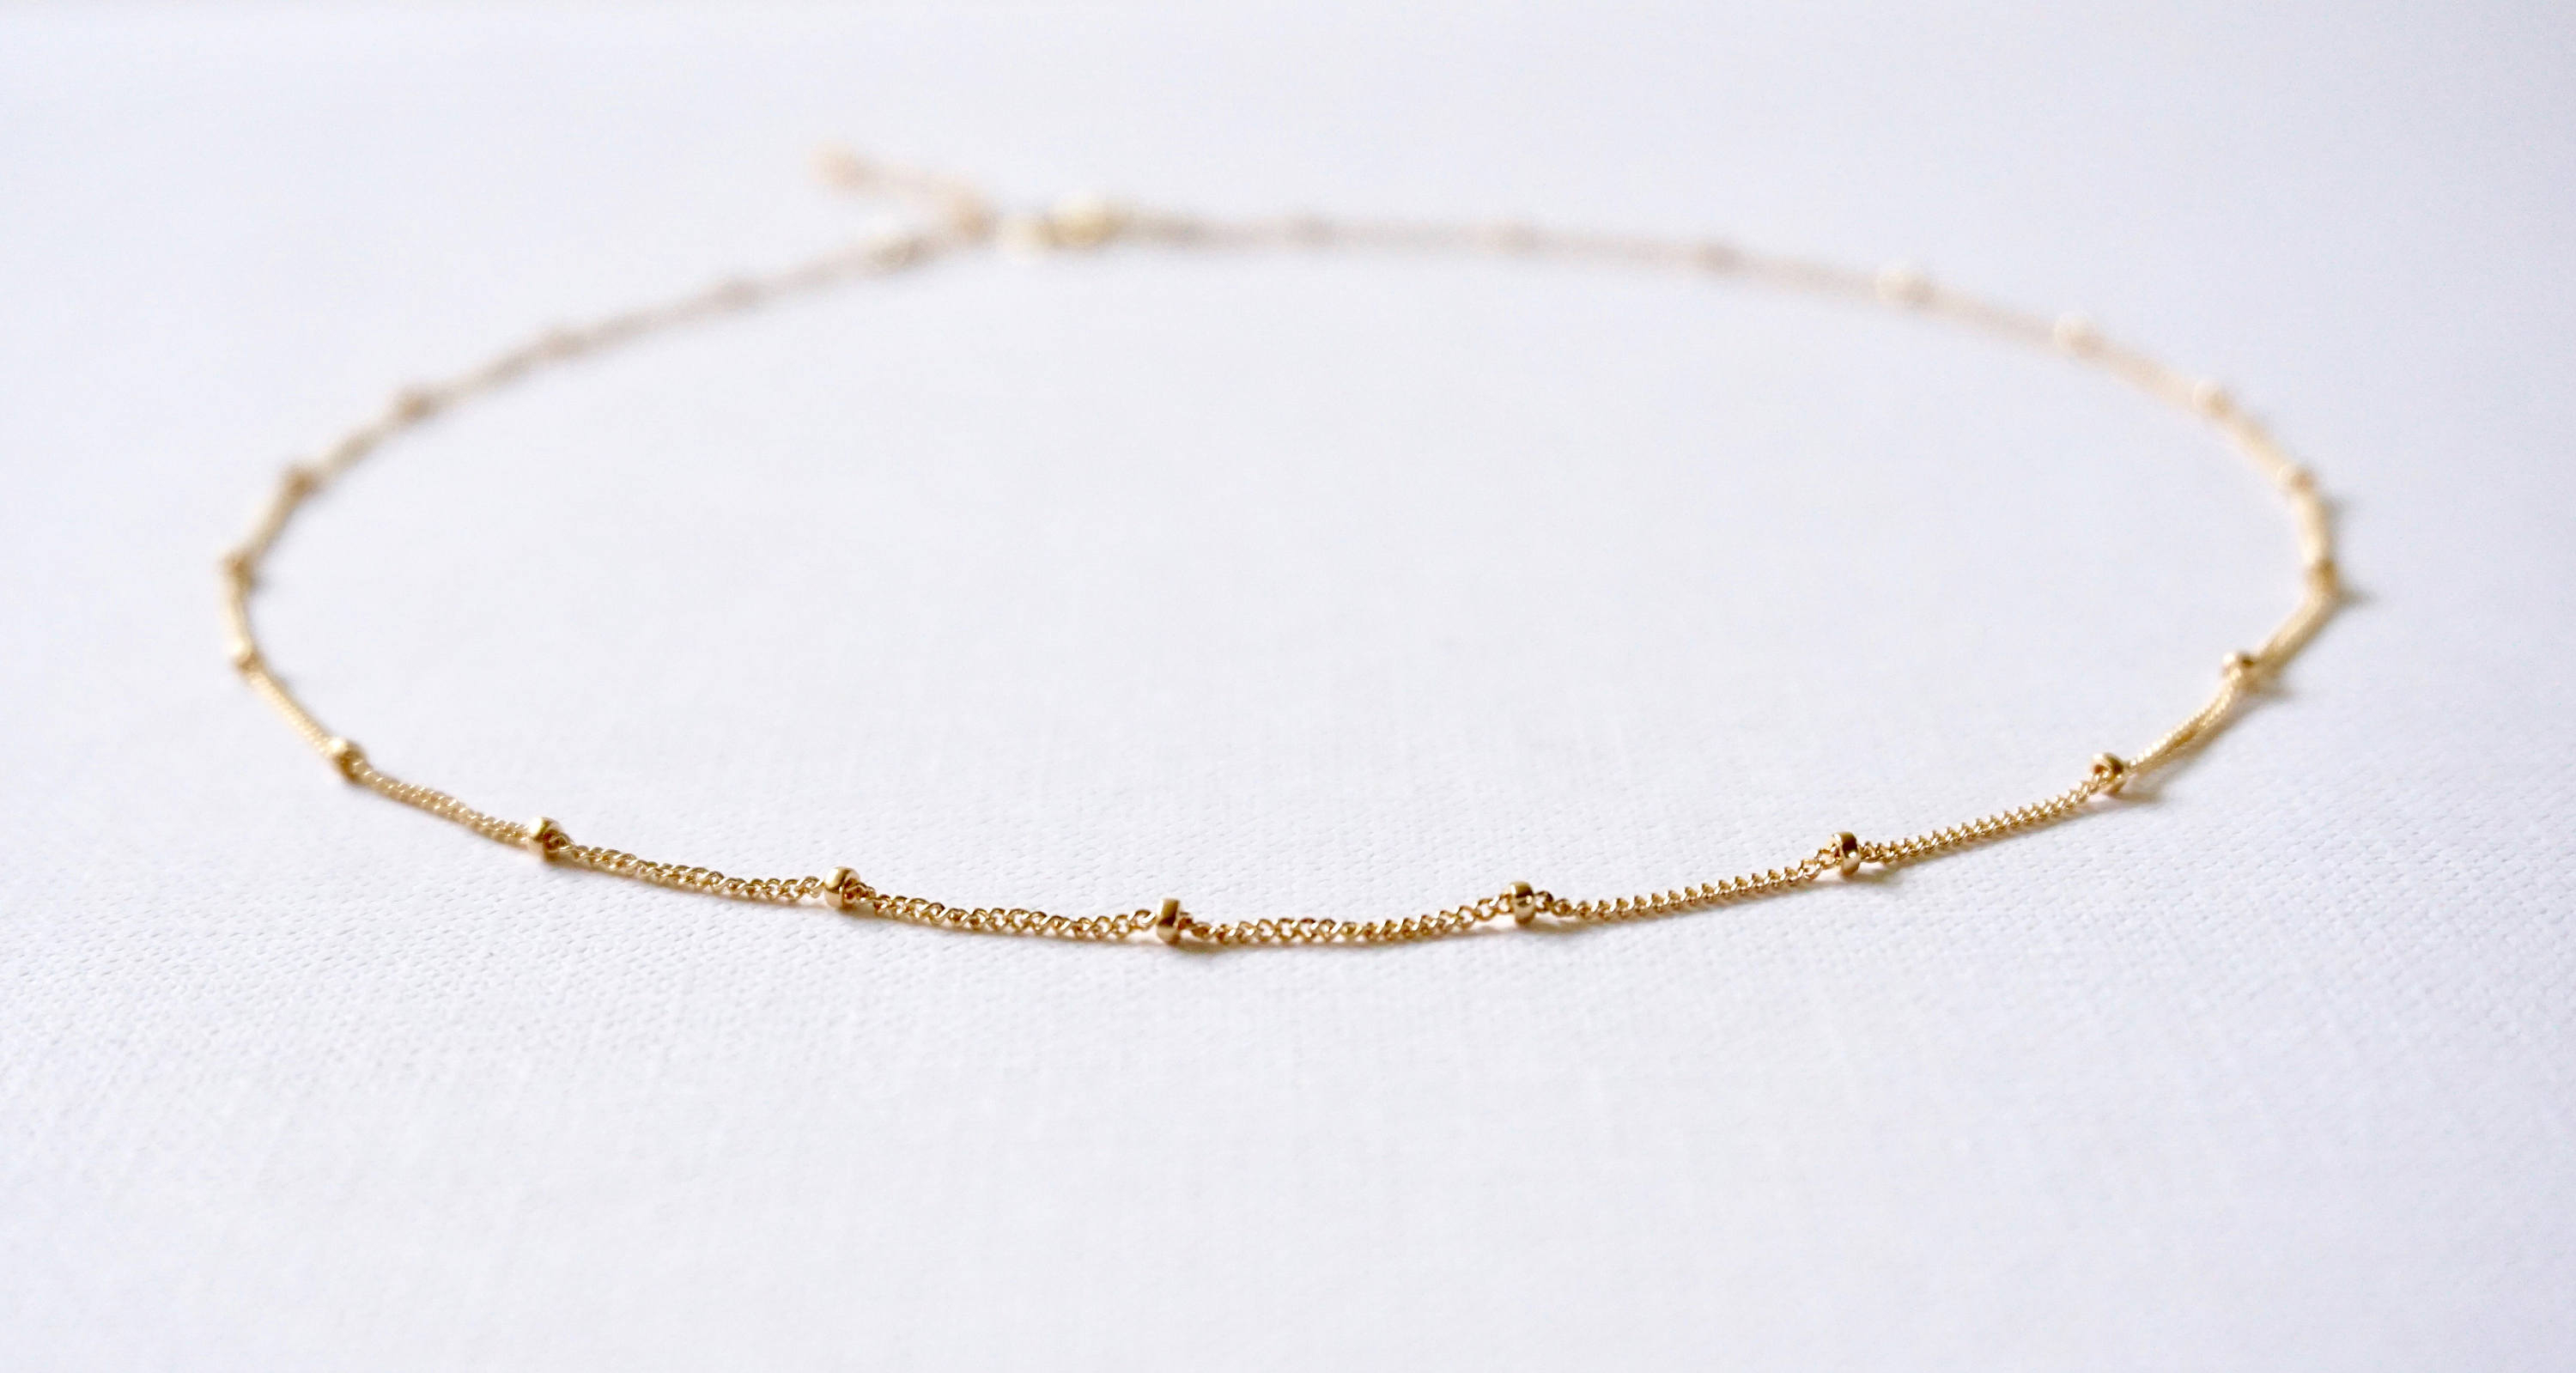 Beaded Chain Necklace, Beaded Chain Choker, Gold Filled Beaded Satellite  Chain, Sterling Silver Satellite Chain, Rose Gold Beaded Chain In Current Beaded Chain Necklaces (Gallery 3 of 25)